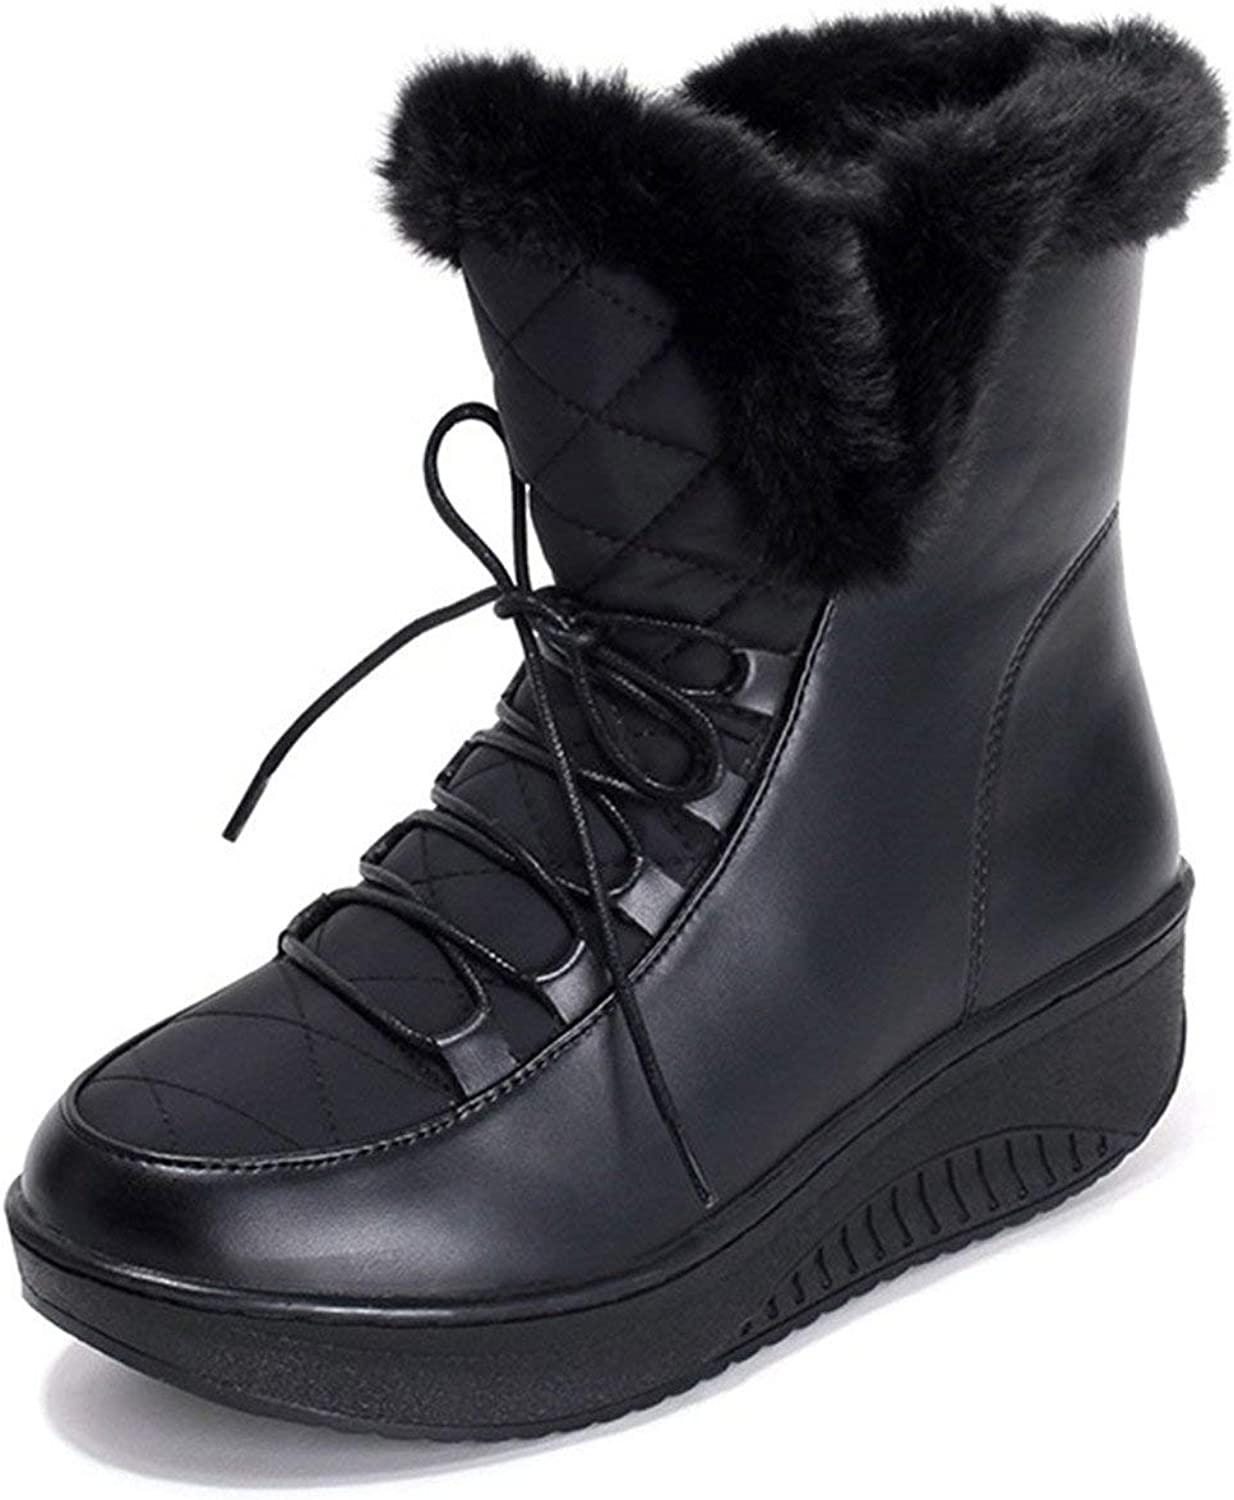 High end Asumer shoes Women Boots Solid Slip-On Soft Cute Women Snow Boots Round Toe Flat with Winter Fur Ankle Boots